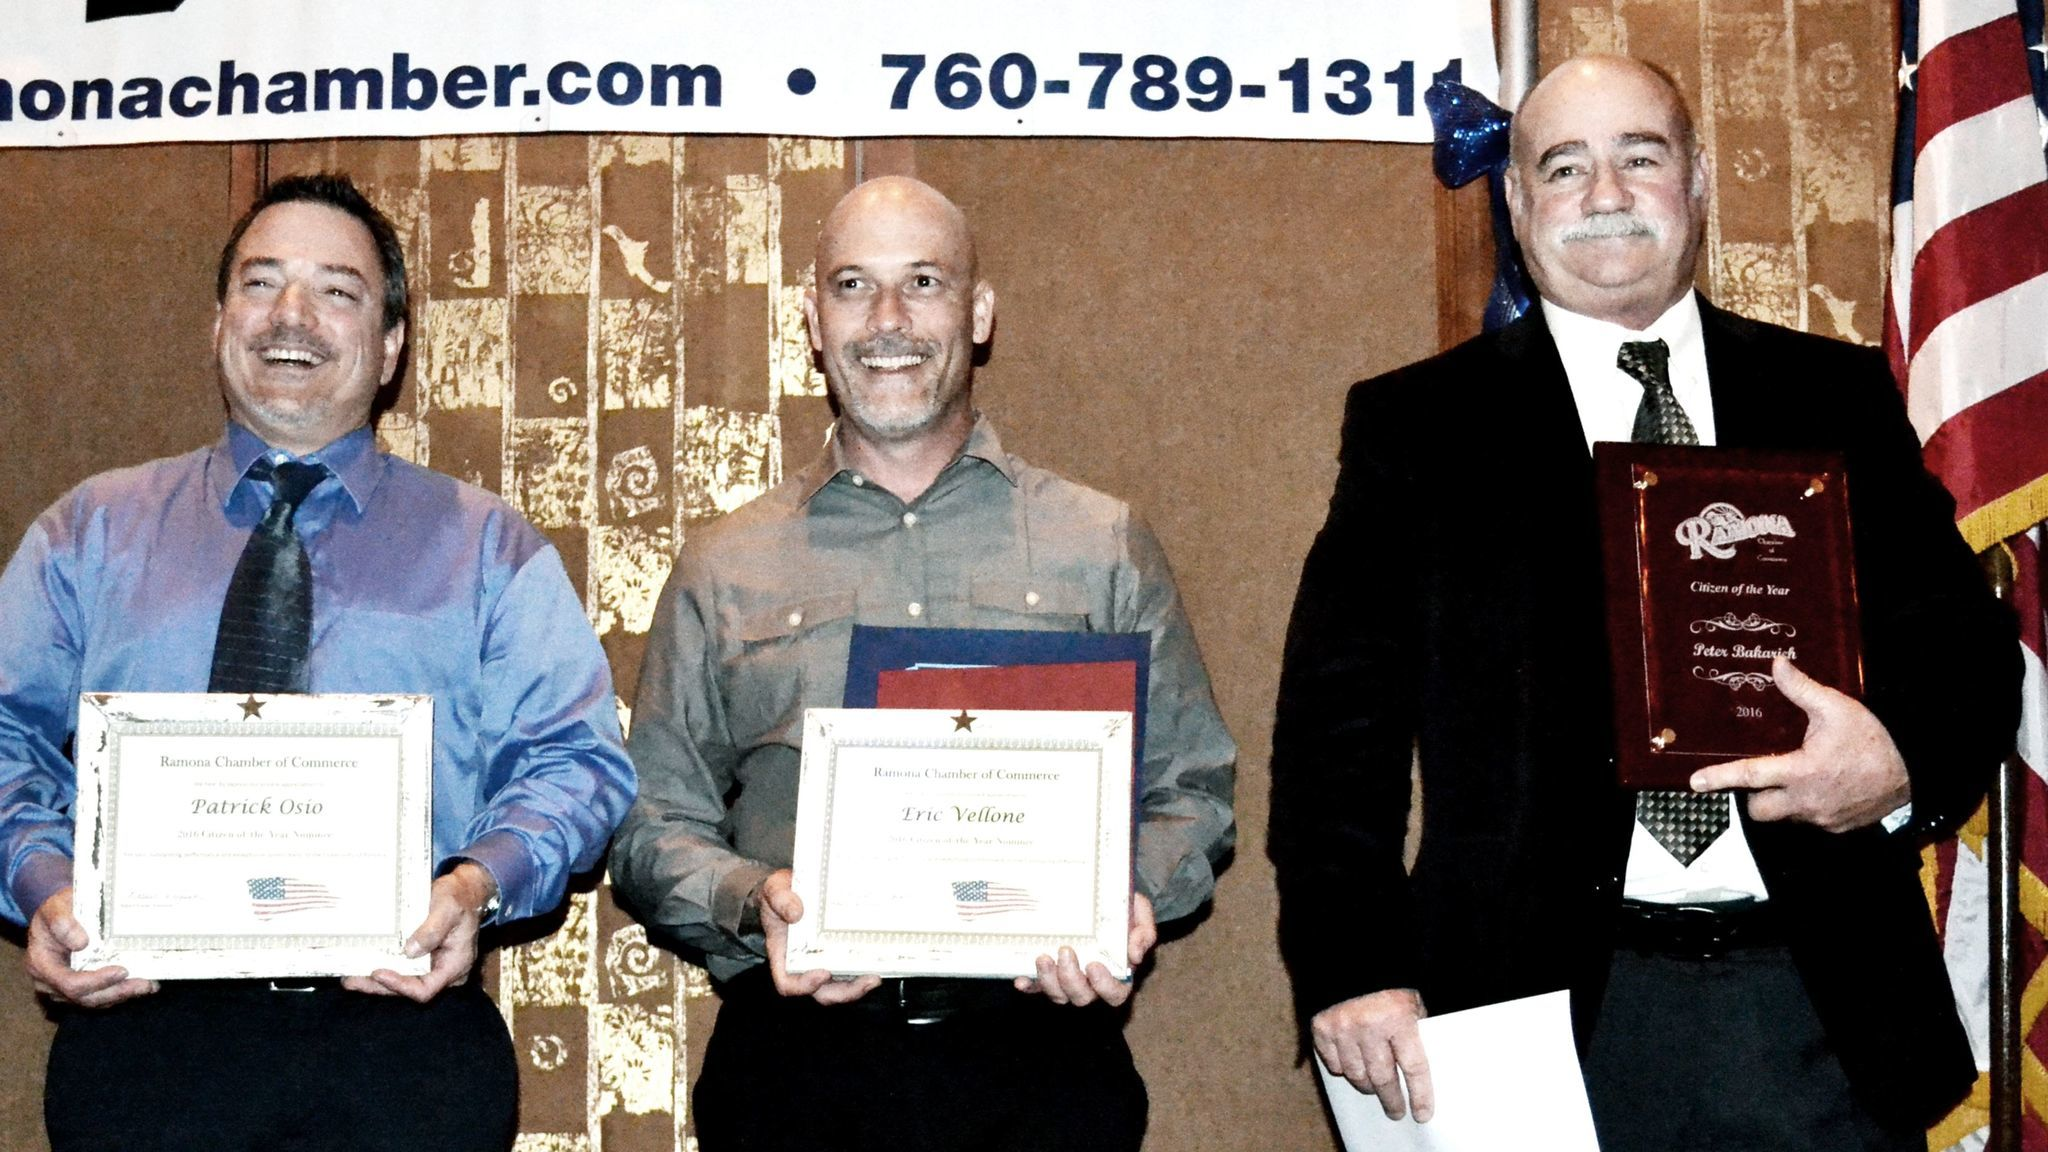 Pete Bakarich, president of Ramona Senior Center, chair of the senior center's Rib Fest, and community volunteer, right, smiles as he receives the chamber's Citizen of the Year award. Patrick Osio, left, and Eric Vellone show their certificates as nominees for the award.